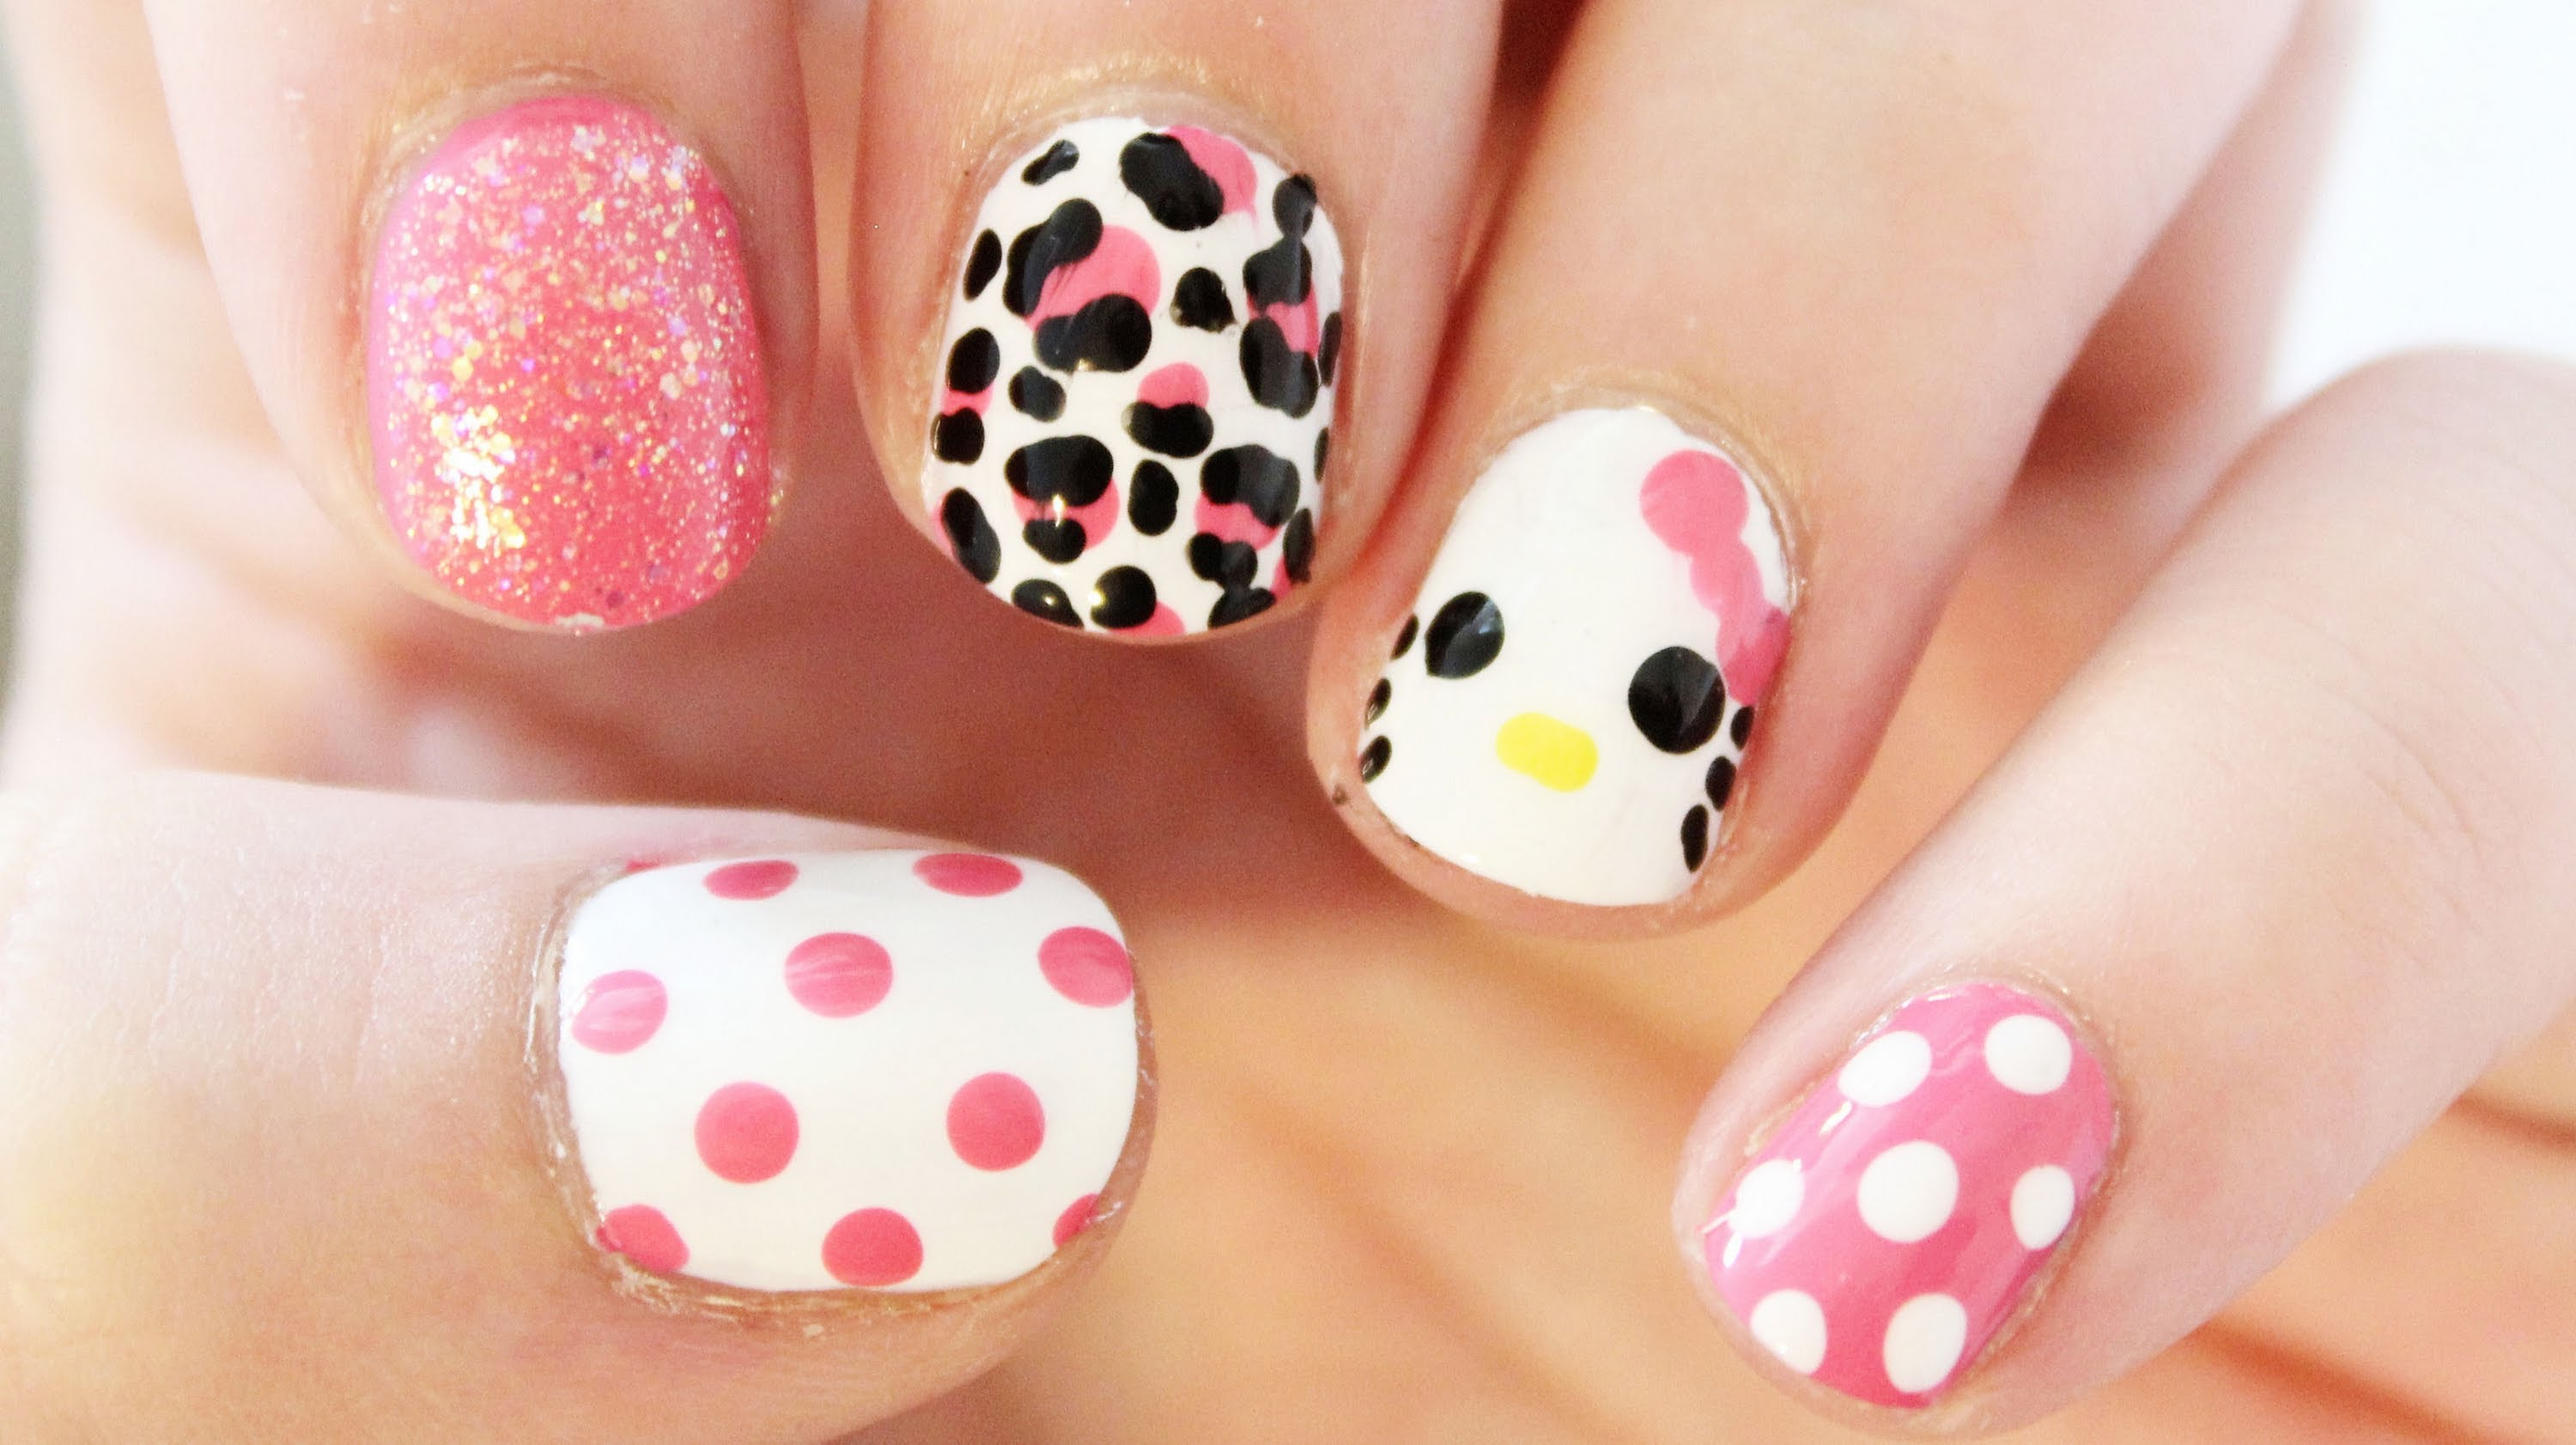 These Hello Kitty Nails Will Leave You Feeling Adorable